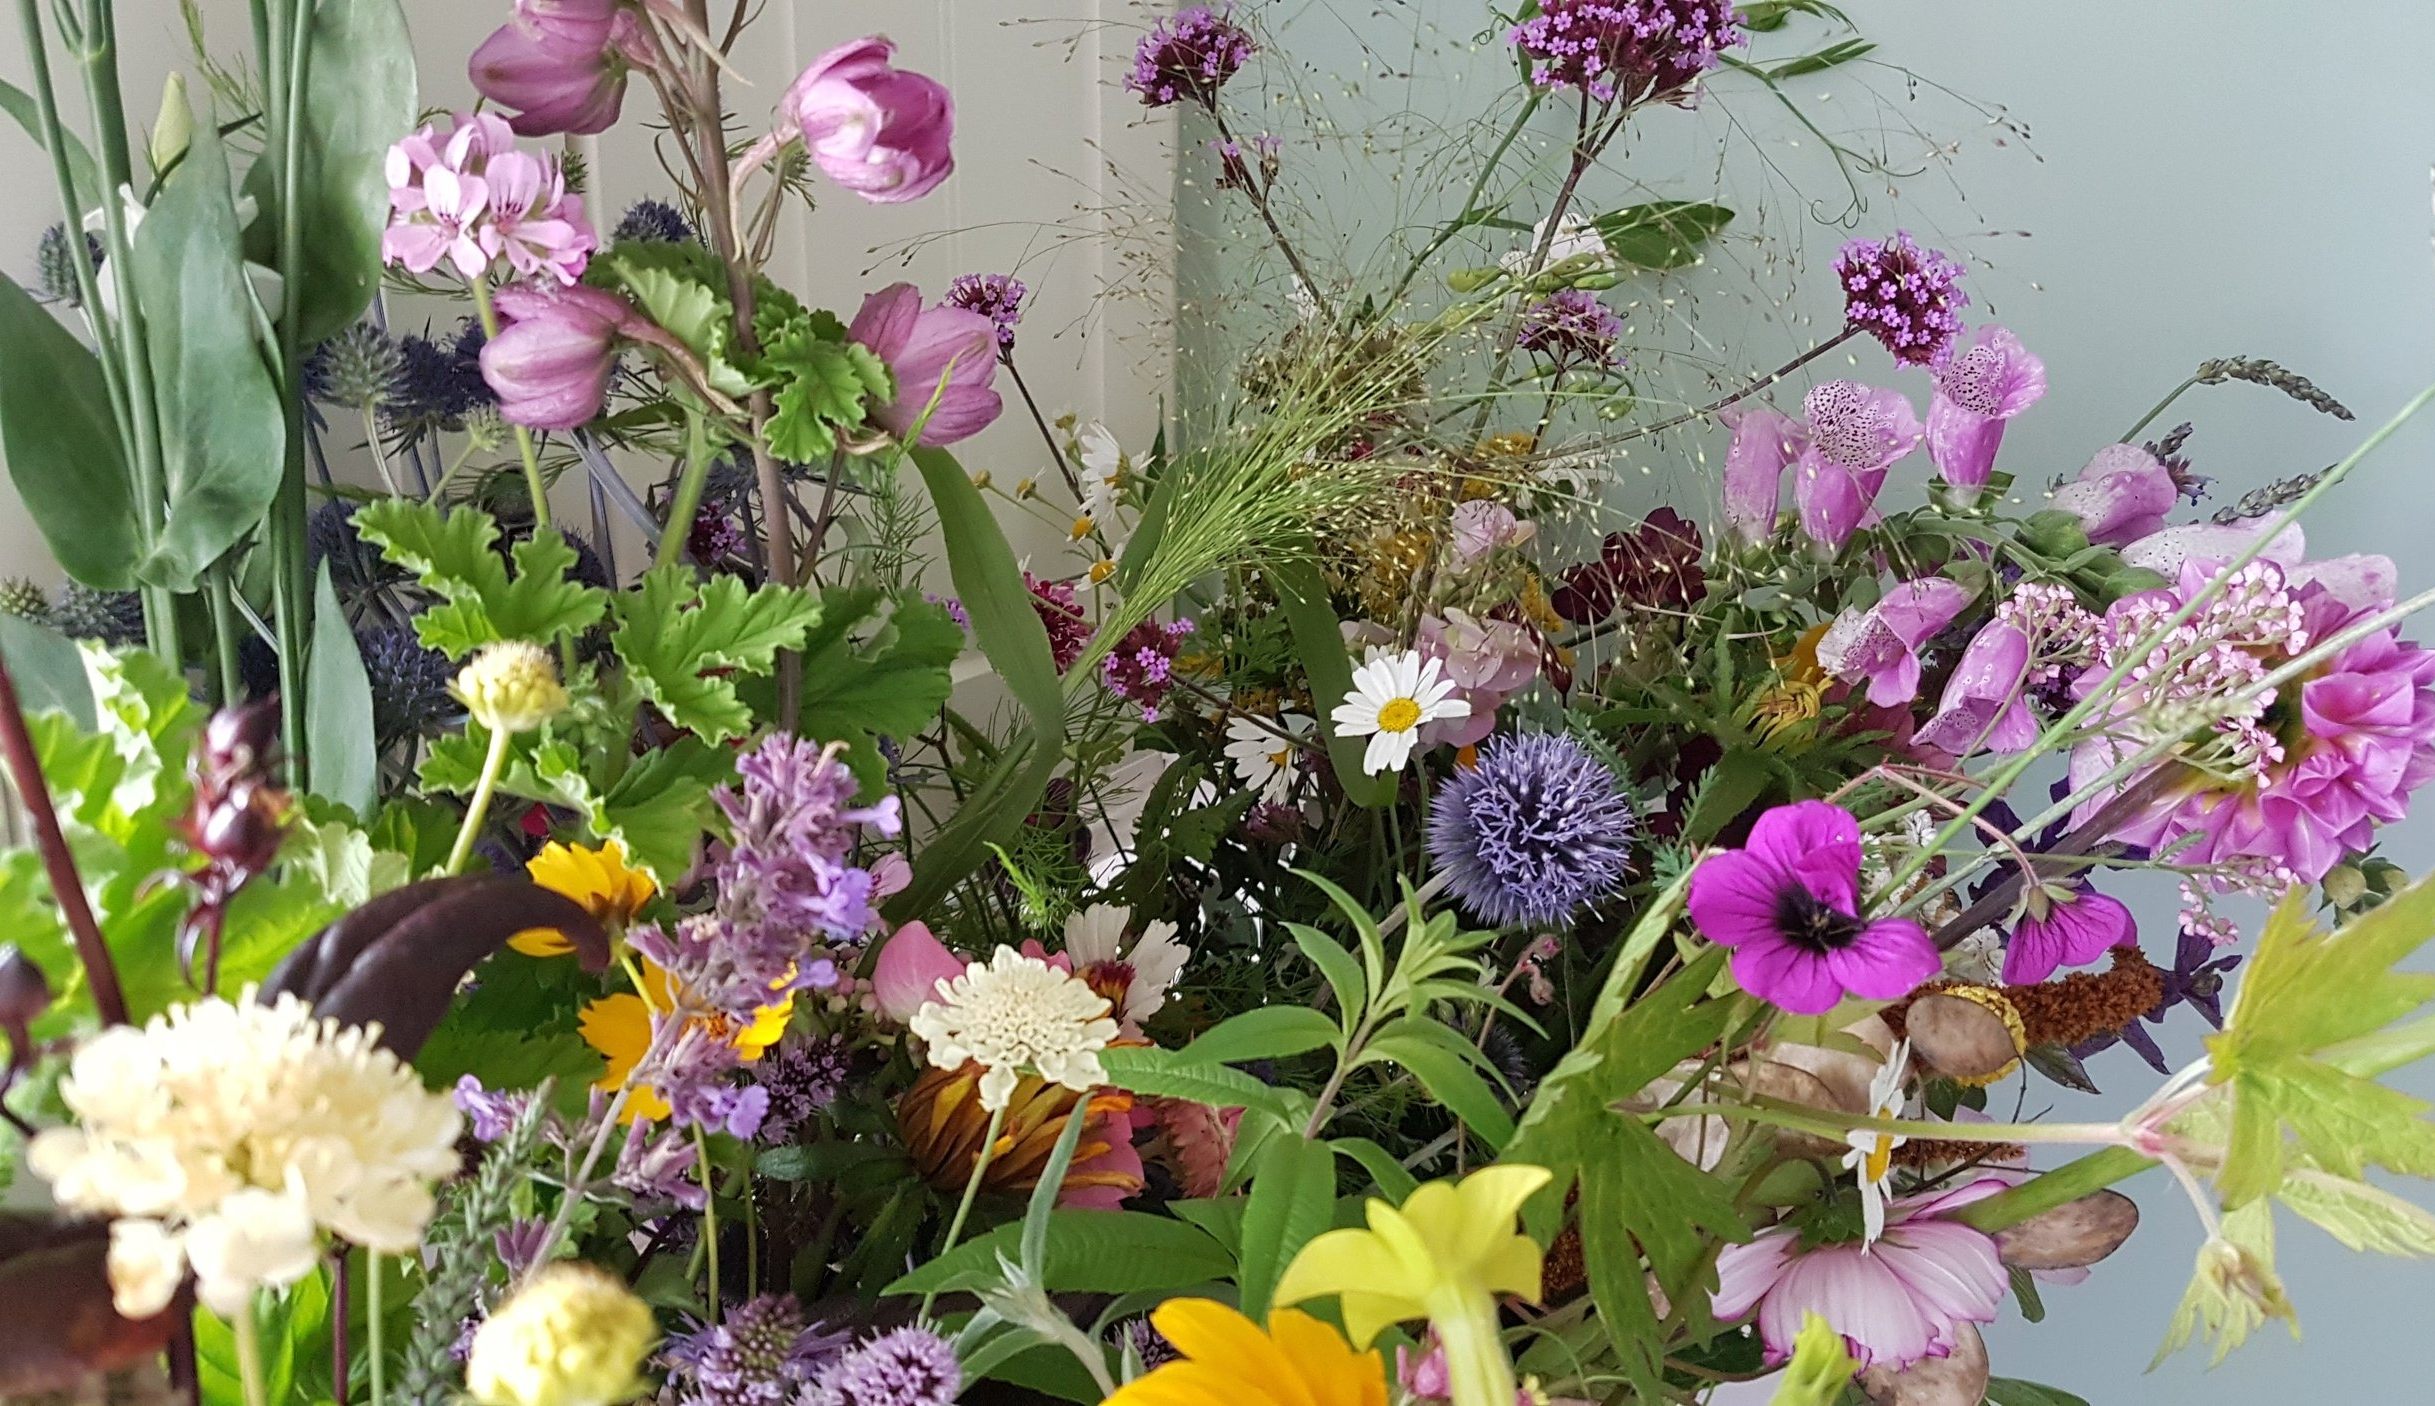 August flowers - scabious, delphinium, lavender, verbena, scented geranium, frosted explosion grass, to name but a few!